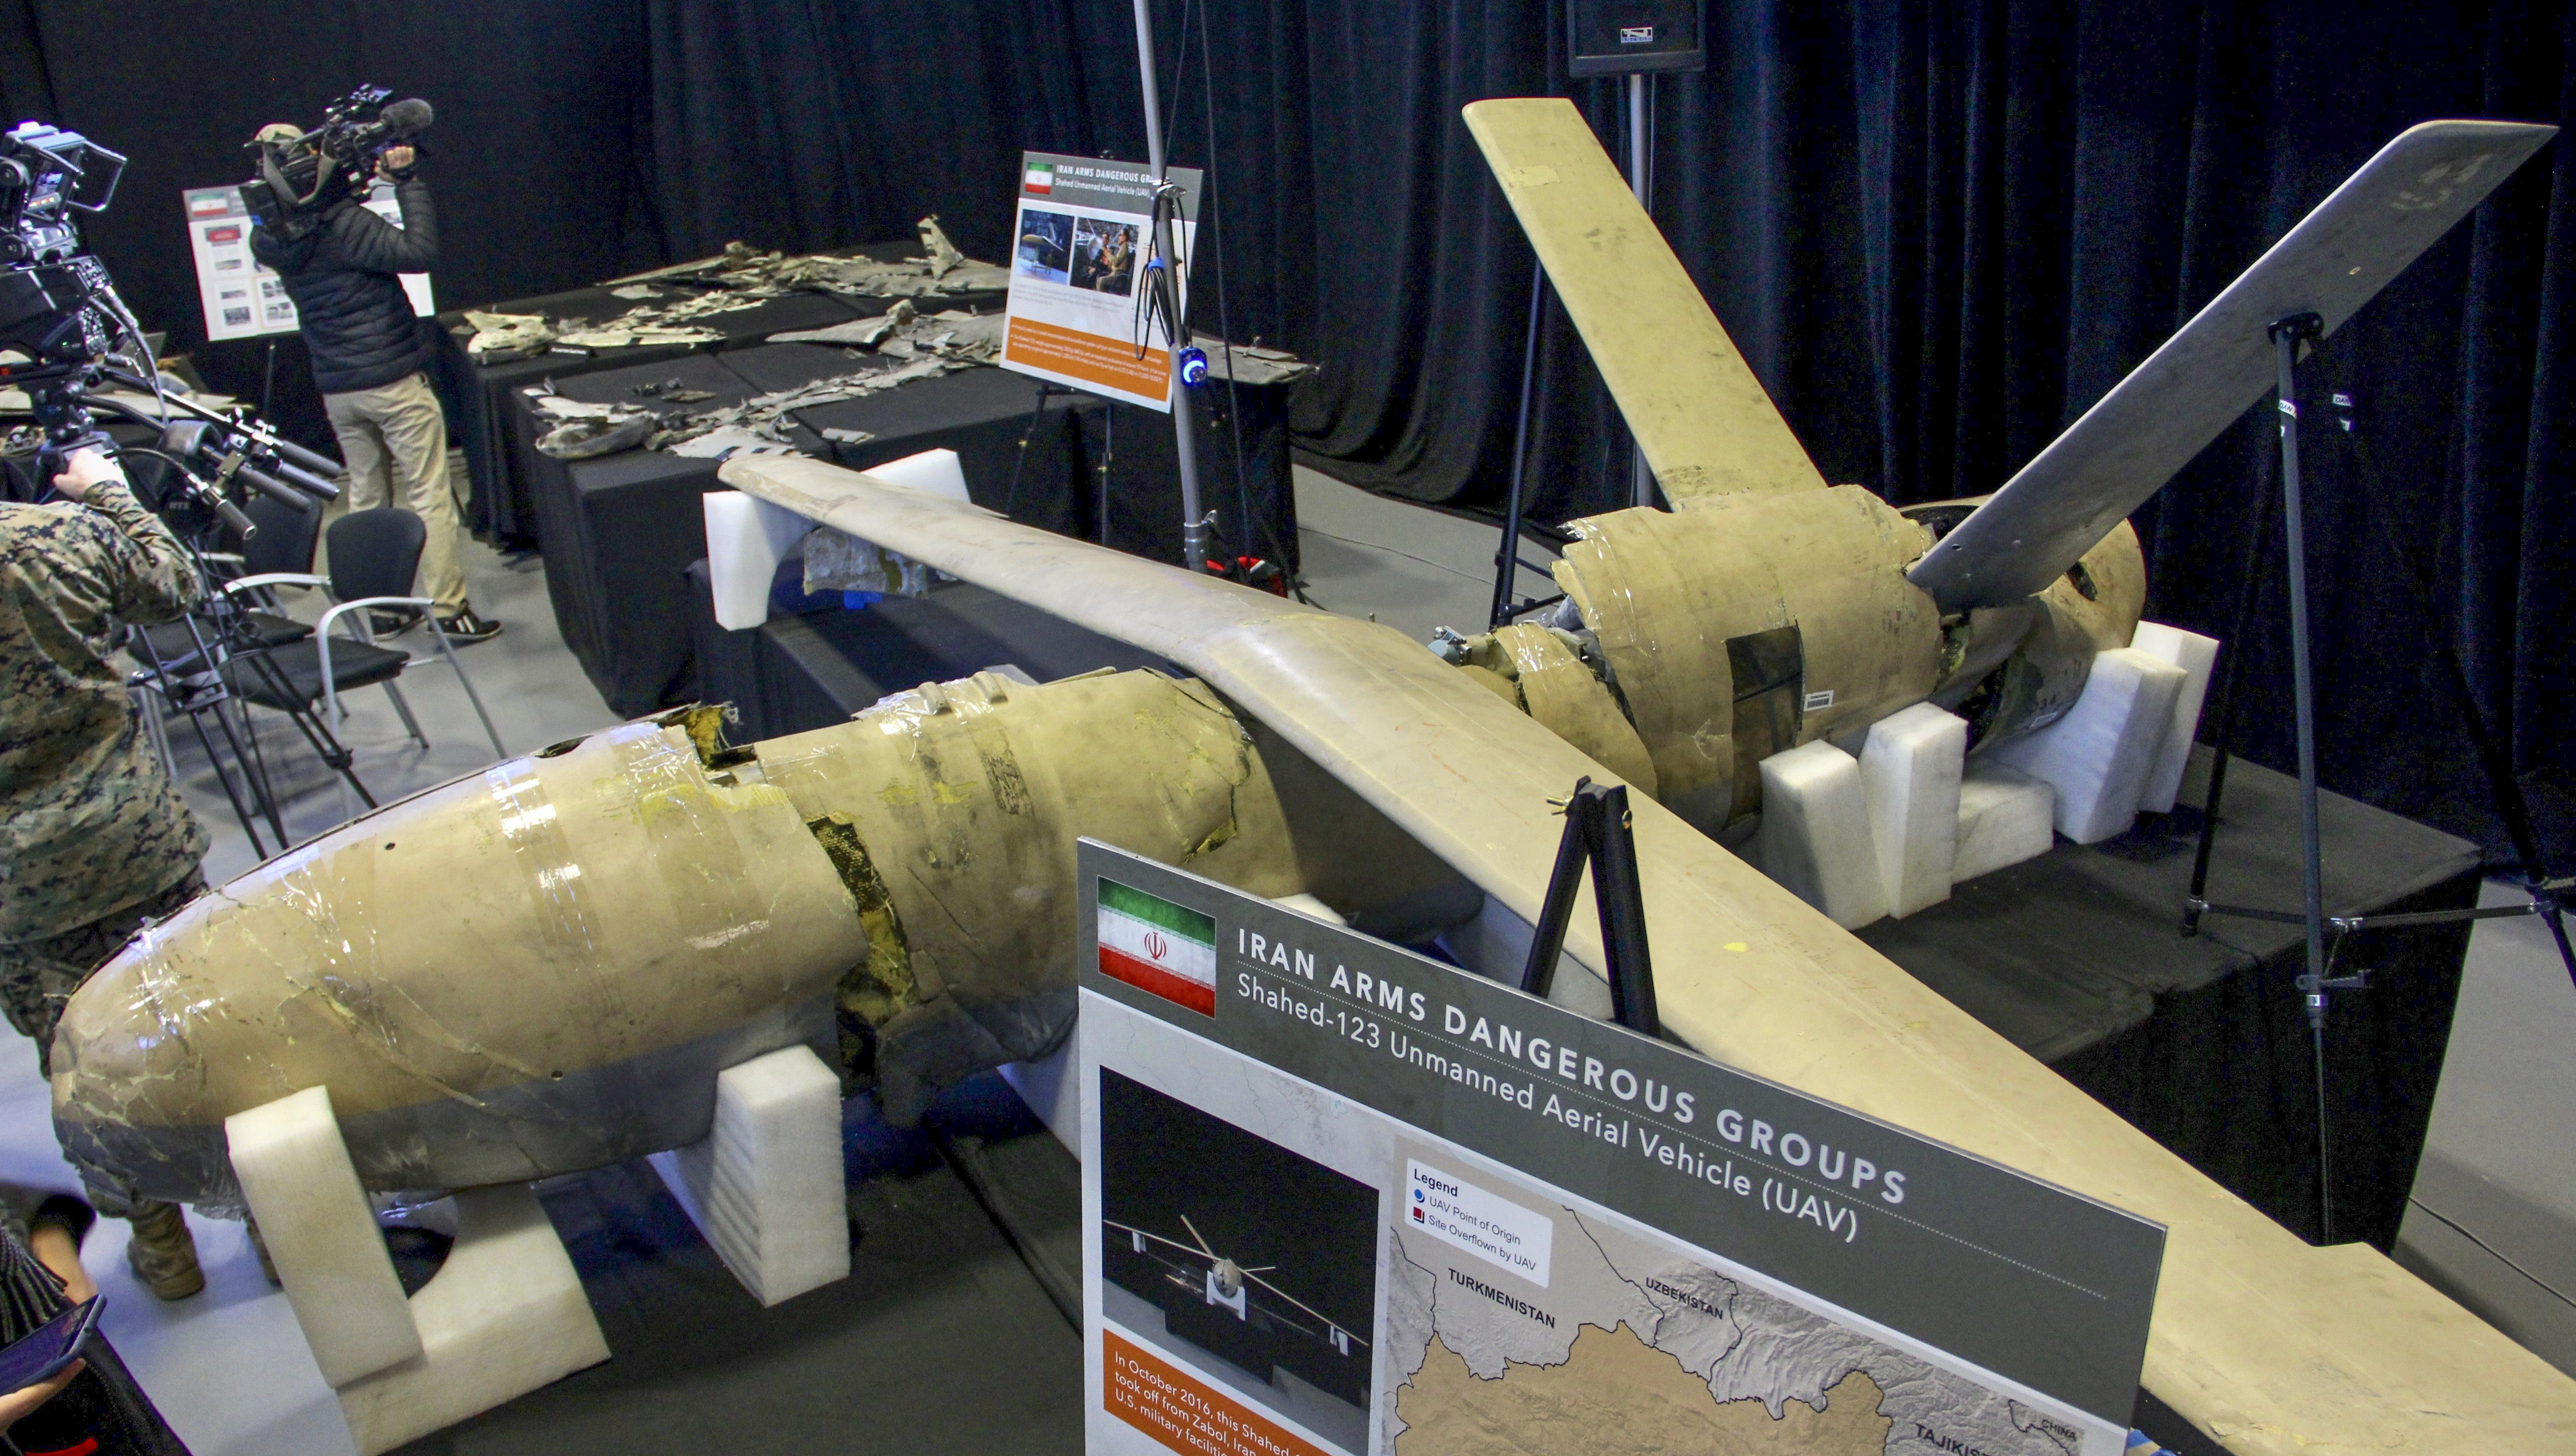 The US military displays what it says are Iranian weapons, at Joint Base Anacostia-Bolling in Washington, DC, on November 29, 2018. - Senior US officials presented what the Pentagon called